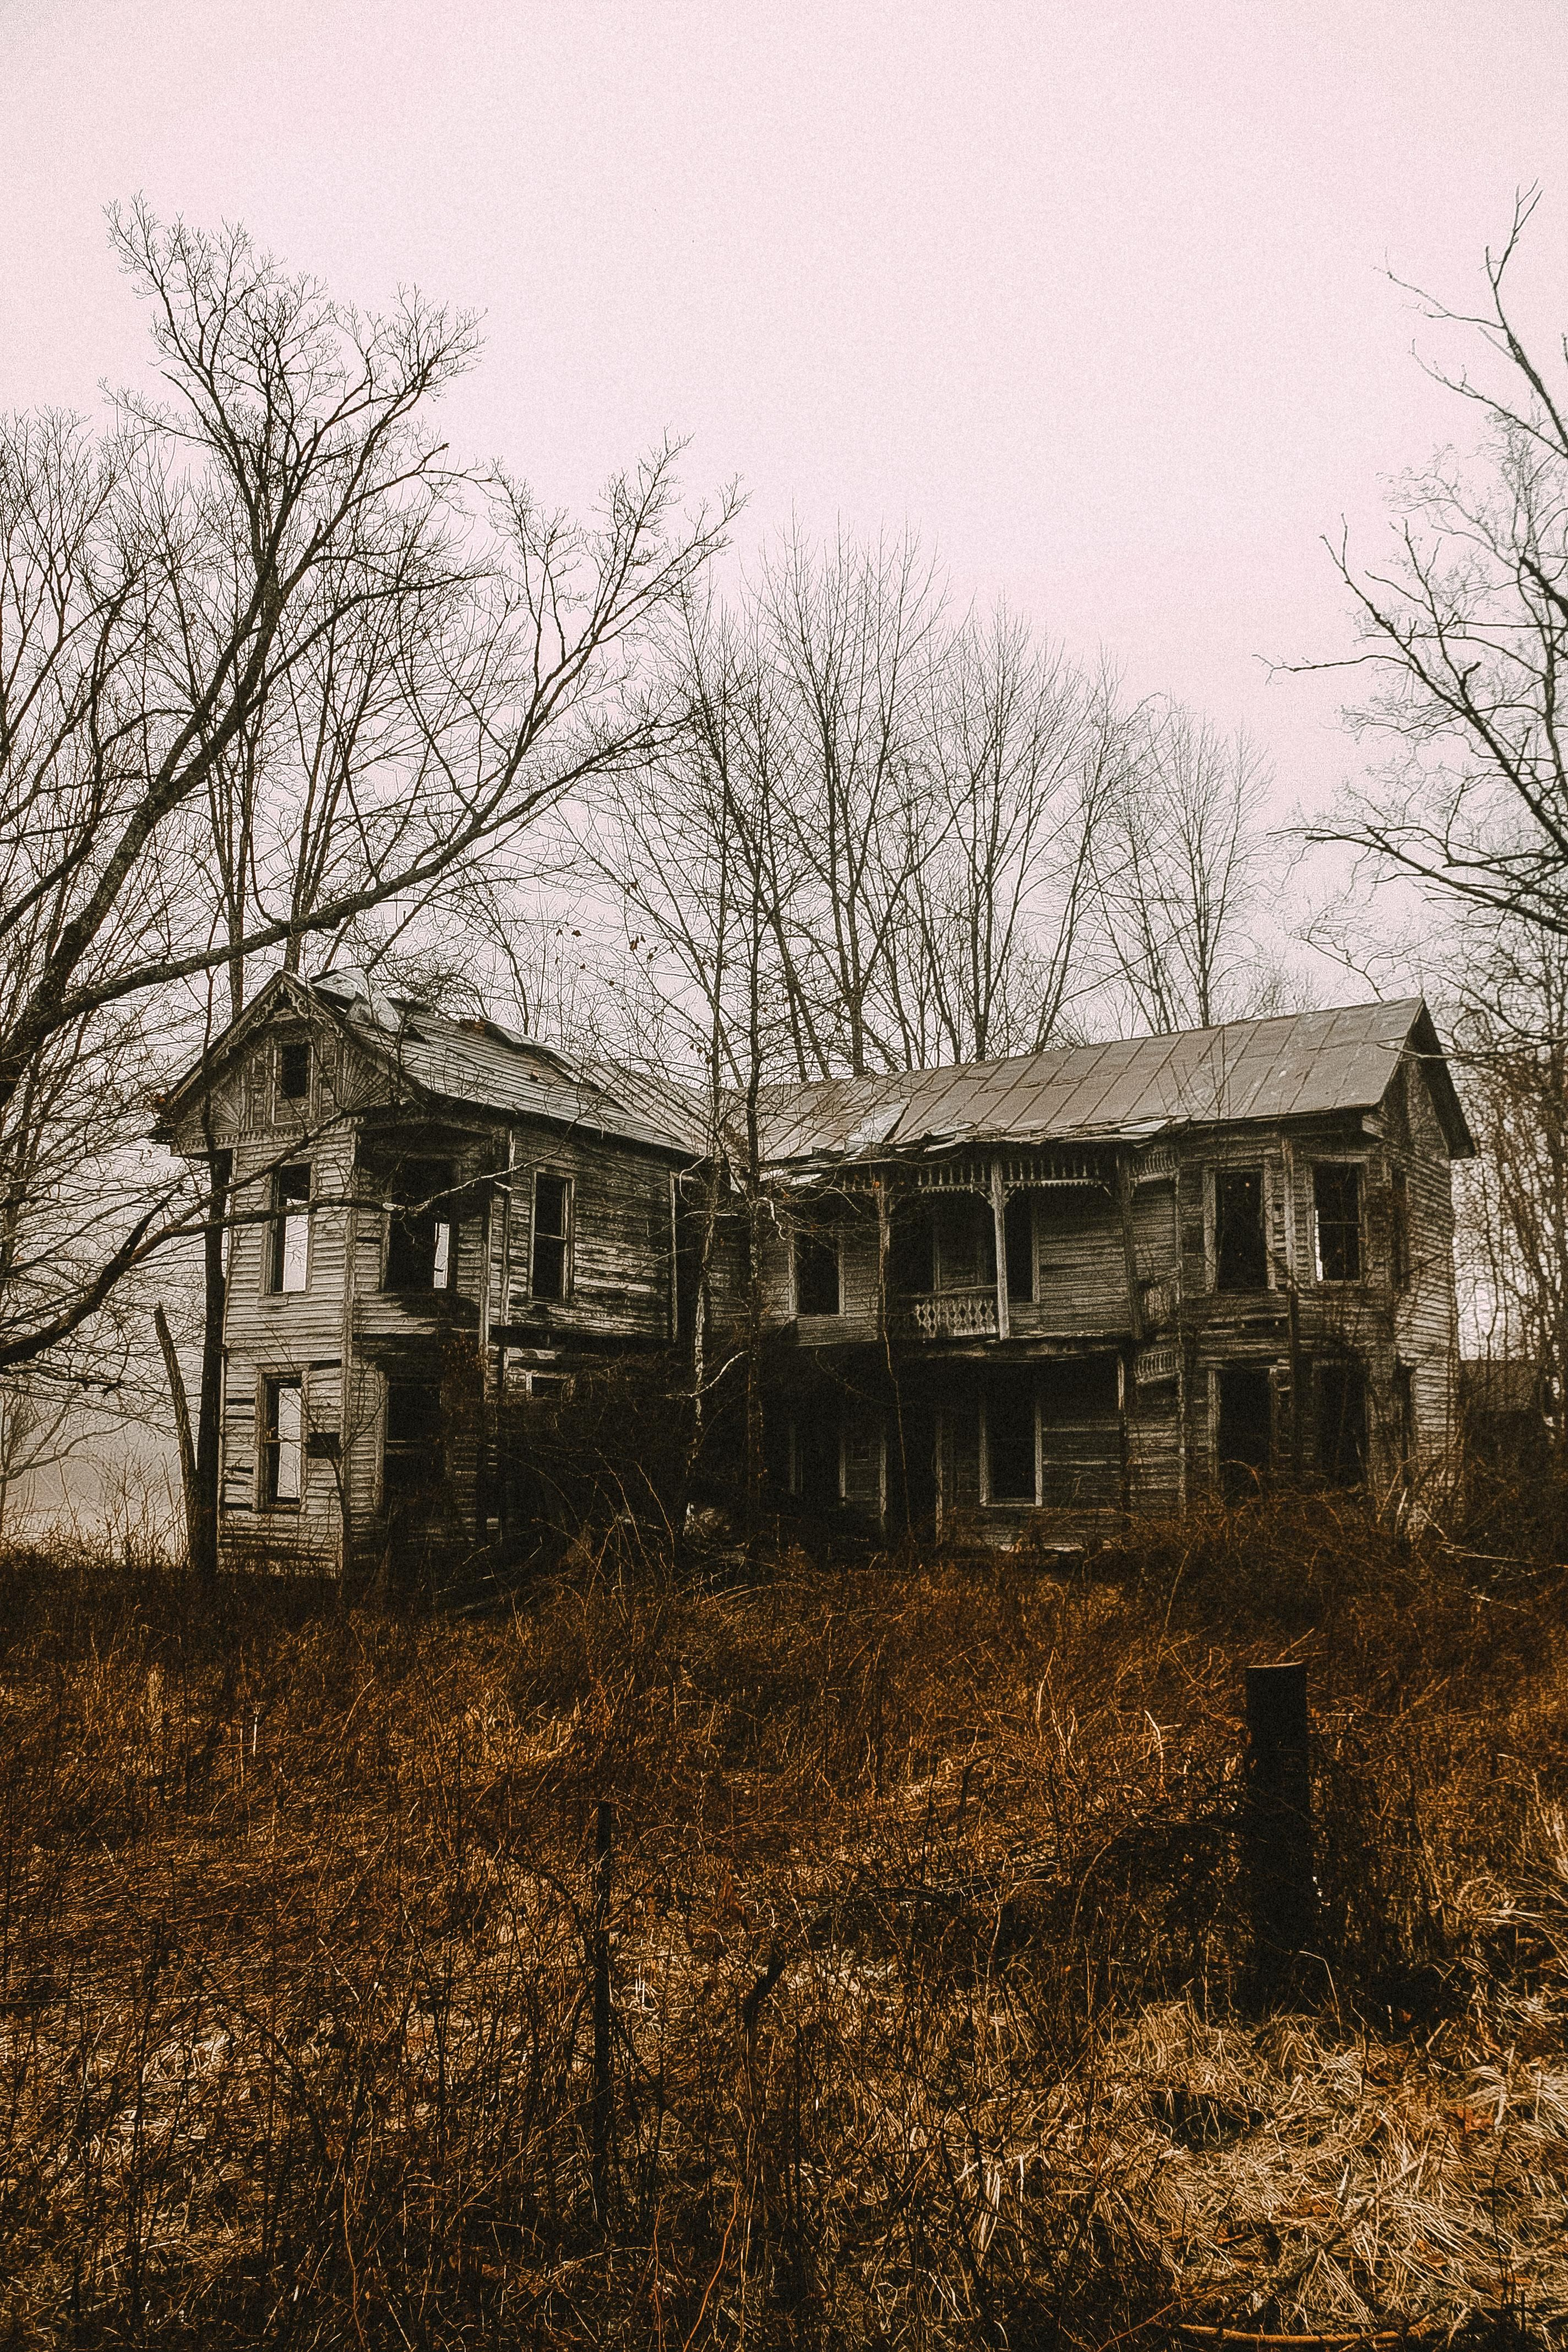 Rural Kentucky Abandonment Gingerbread House Formerly Owned By A Surgeon Apparently There Was An Opera Abandoned Farm Houses Creepy Houses Abandoned Places